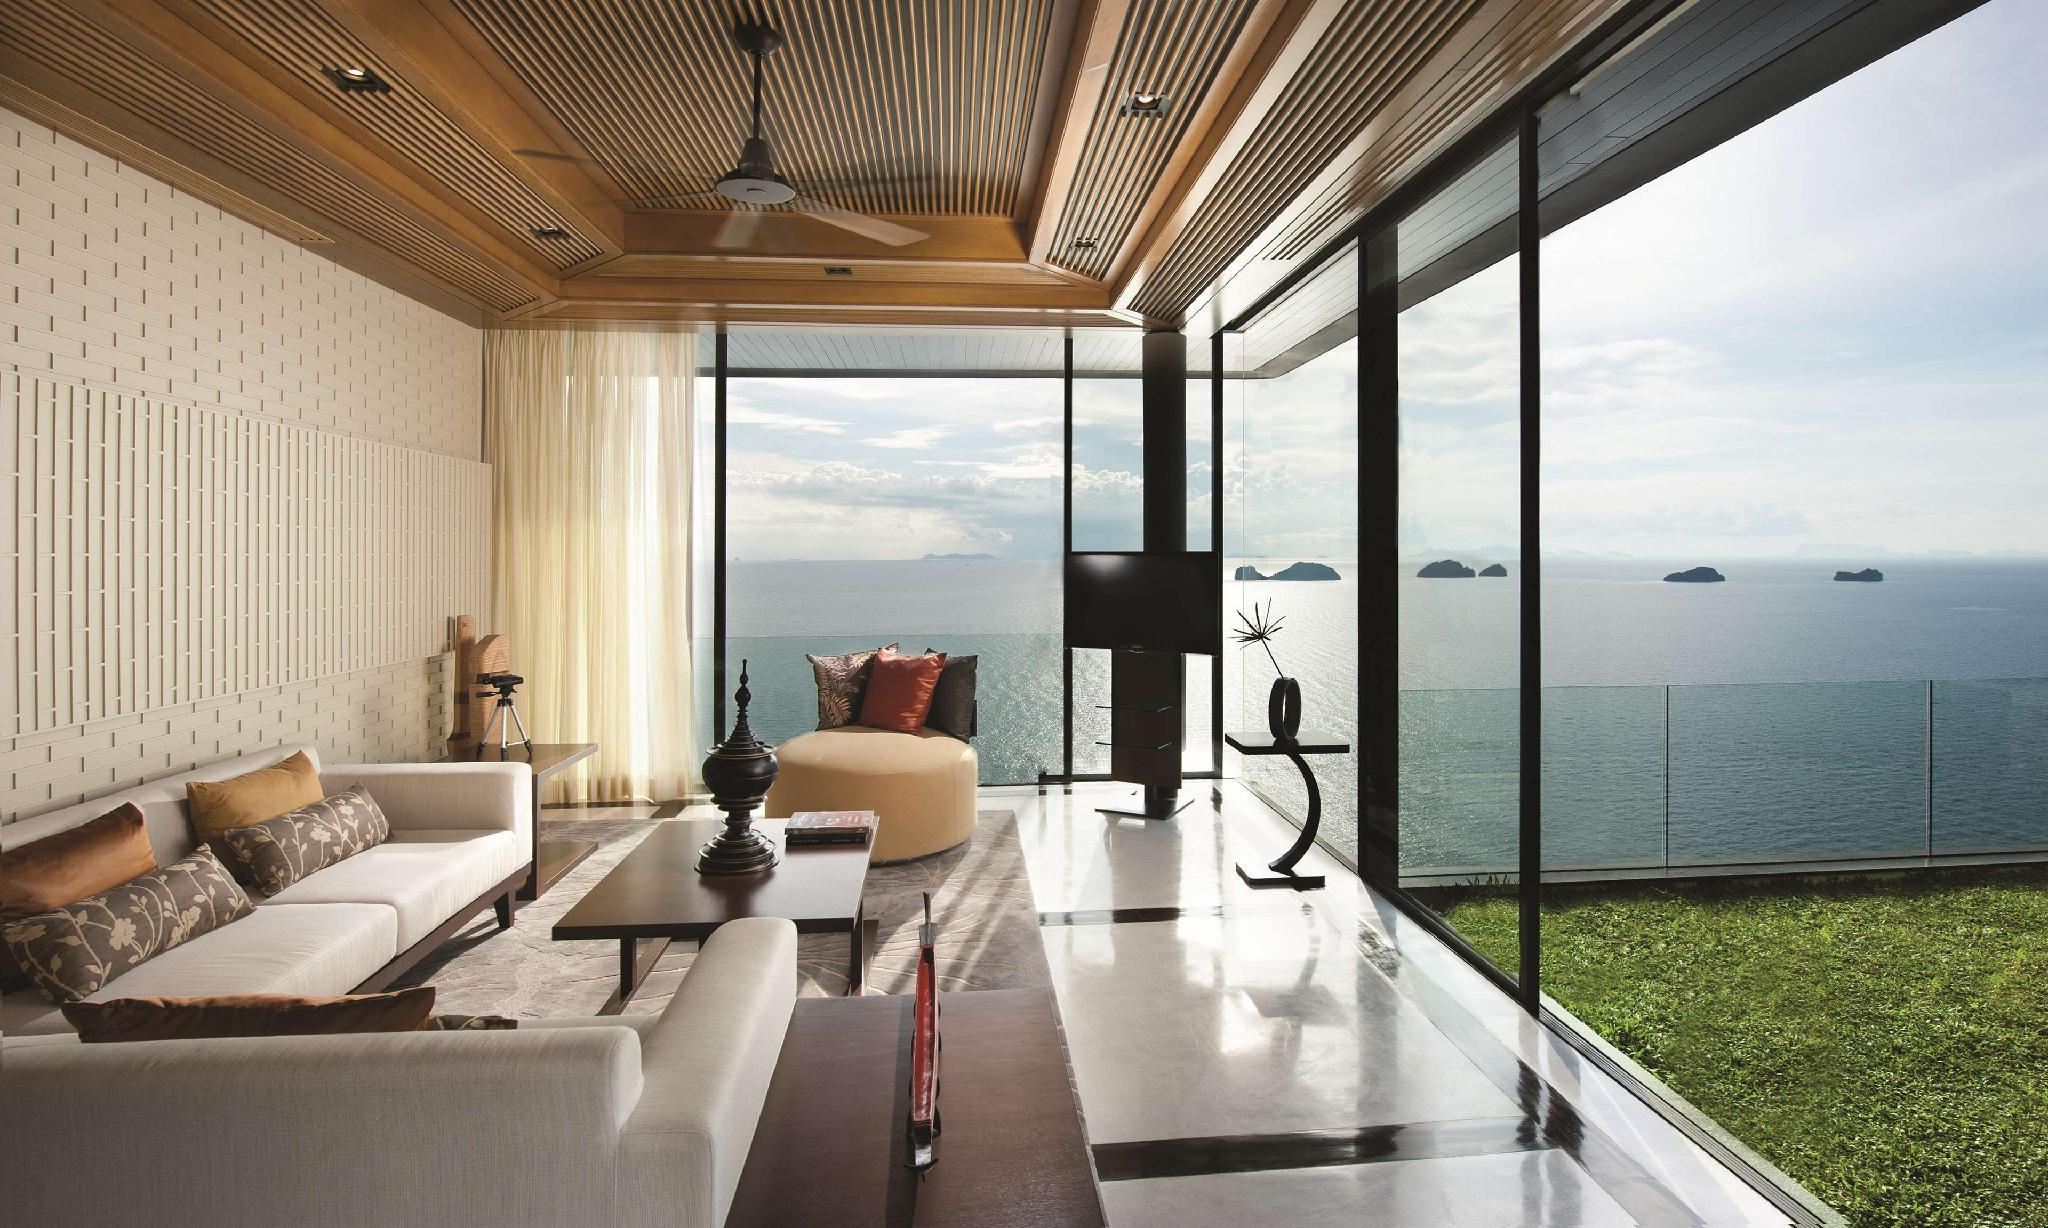 2-Bedroom Panoramic Ocean View With Pool Villa